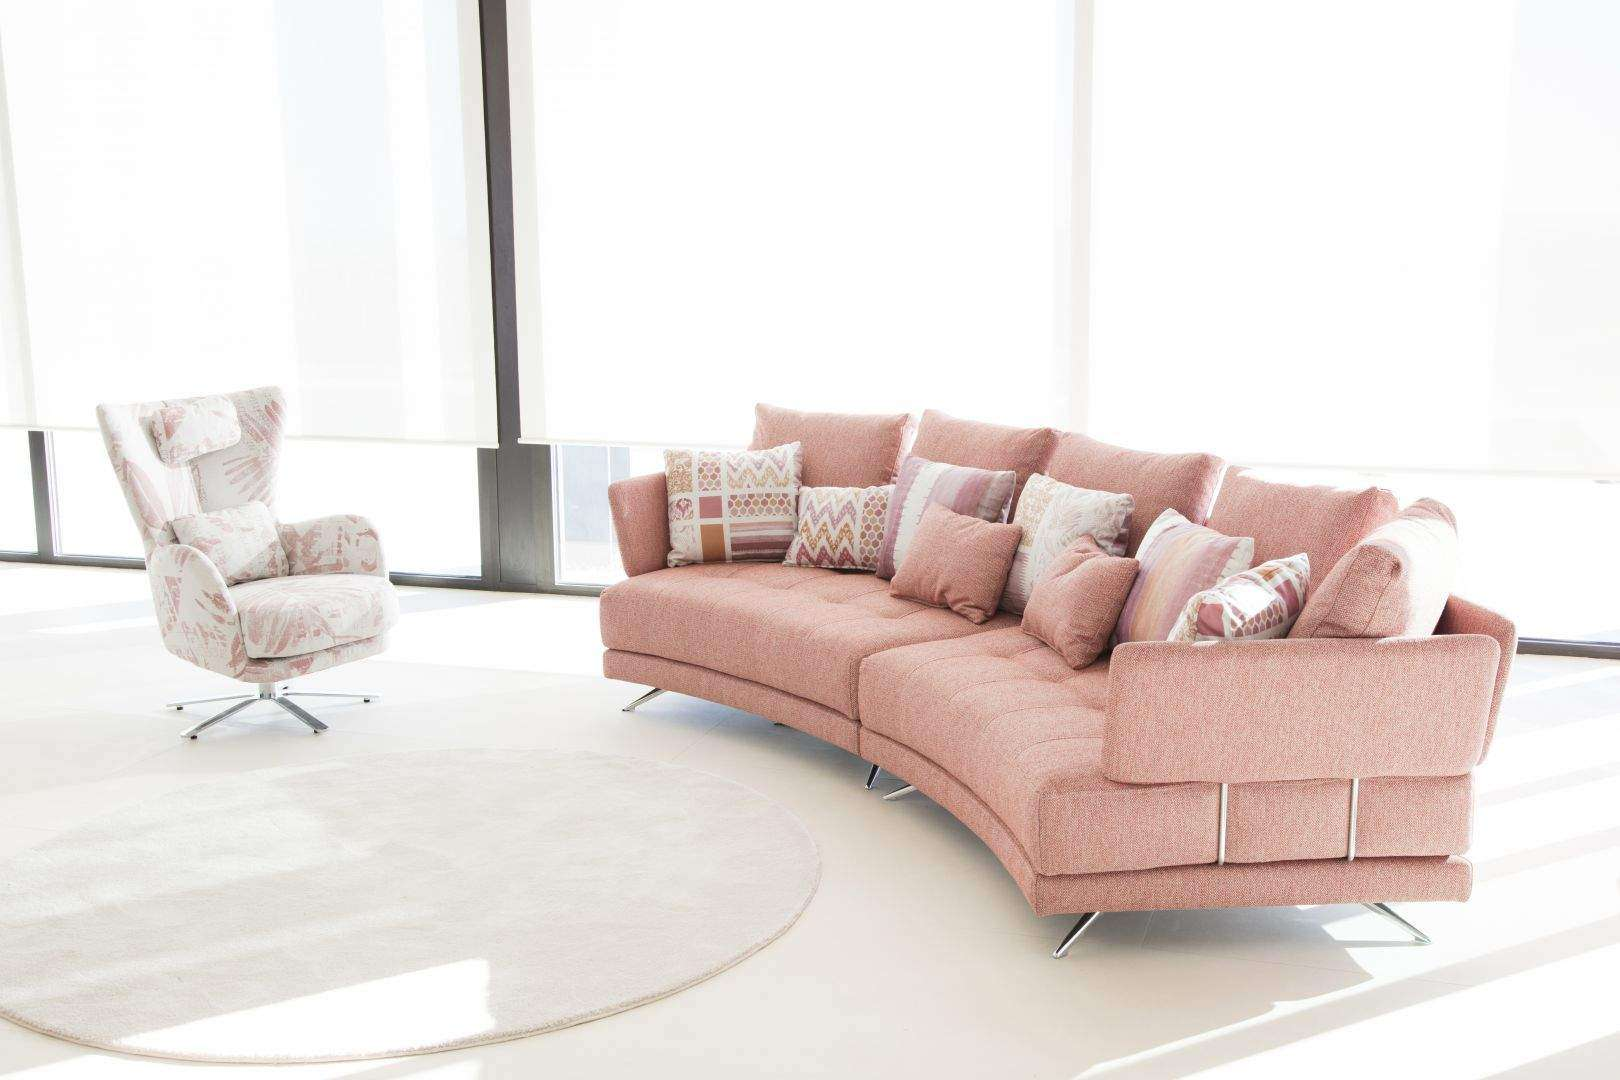 Remarkable Fama Pacific Corner Sofa Eyres Home Furnishing Since Gmtry Best Dining Table And Chair Ideas Images Gmtryco